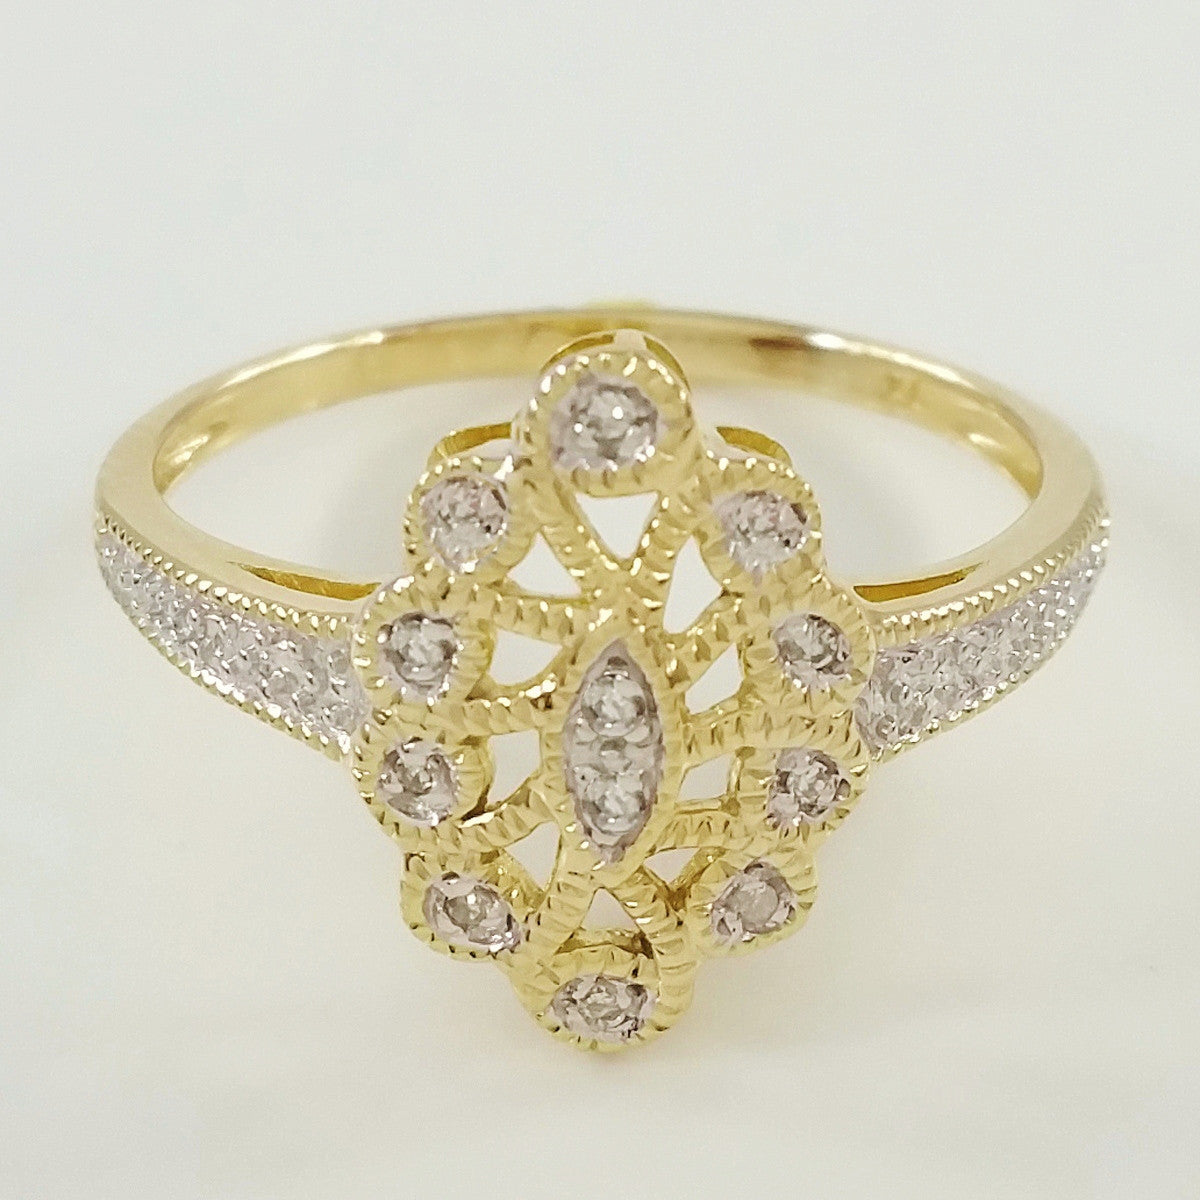 9K SOLID GOLD ART DECO INSPIRED NAVETTE RING WITH 12 DIAMONDS.